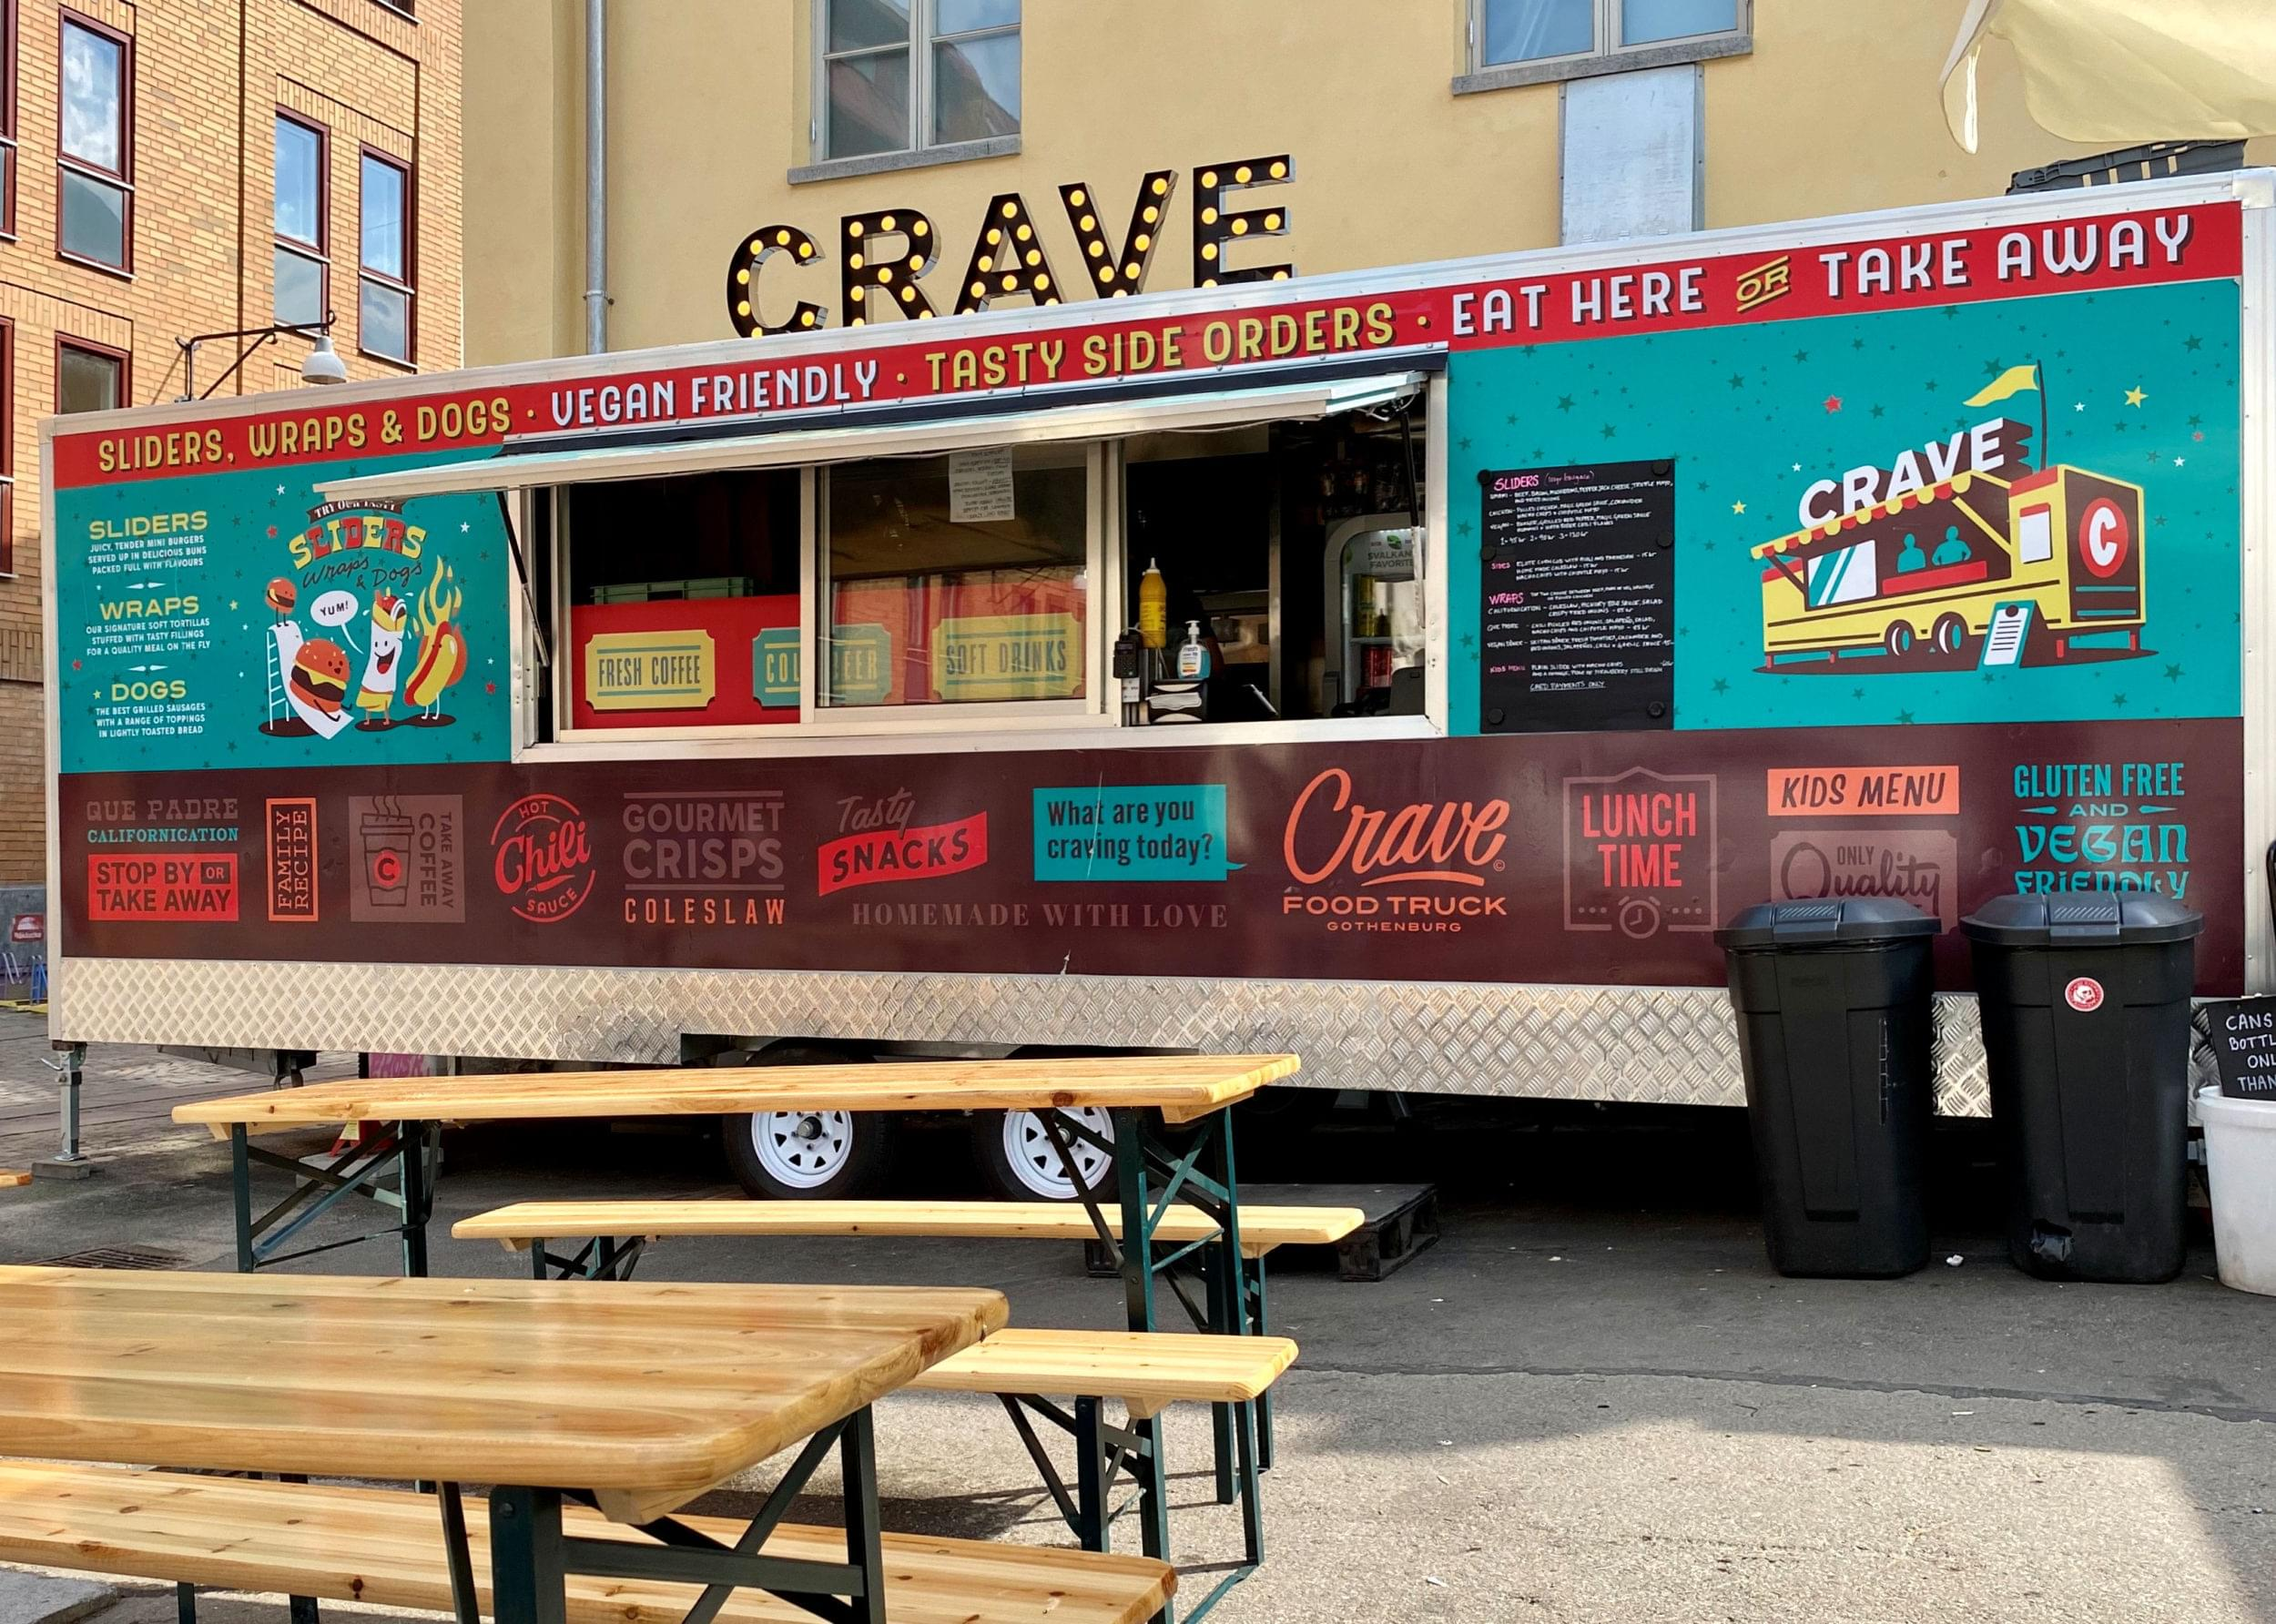 Photo of the food truck